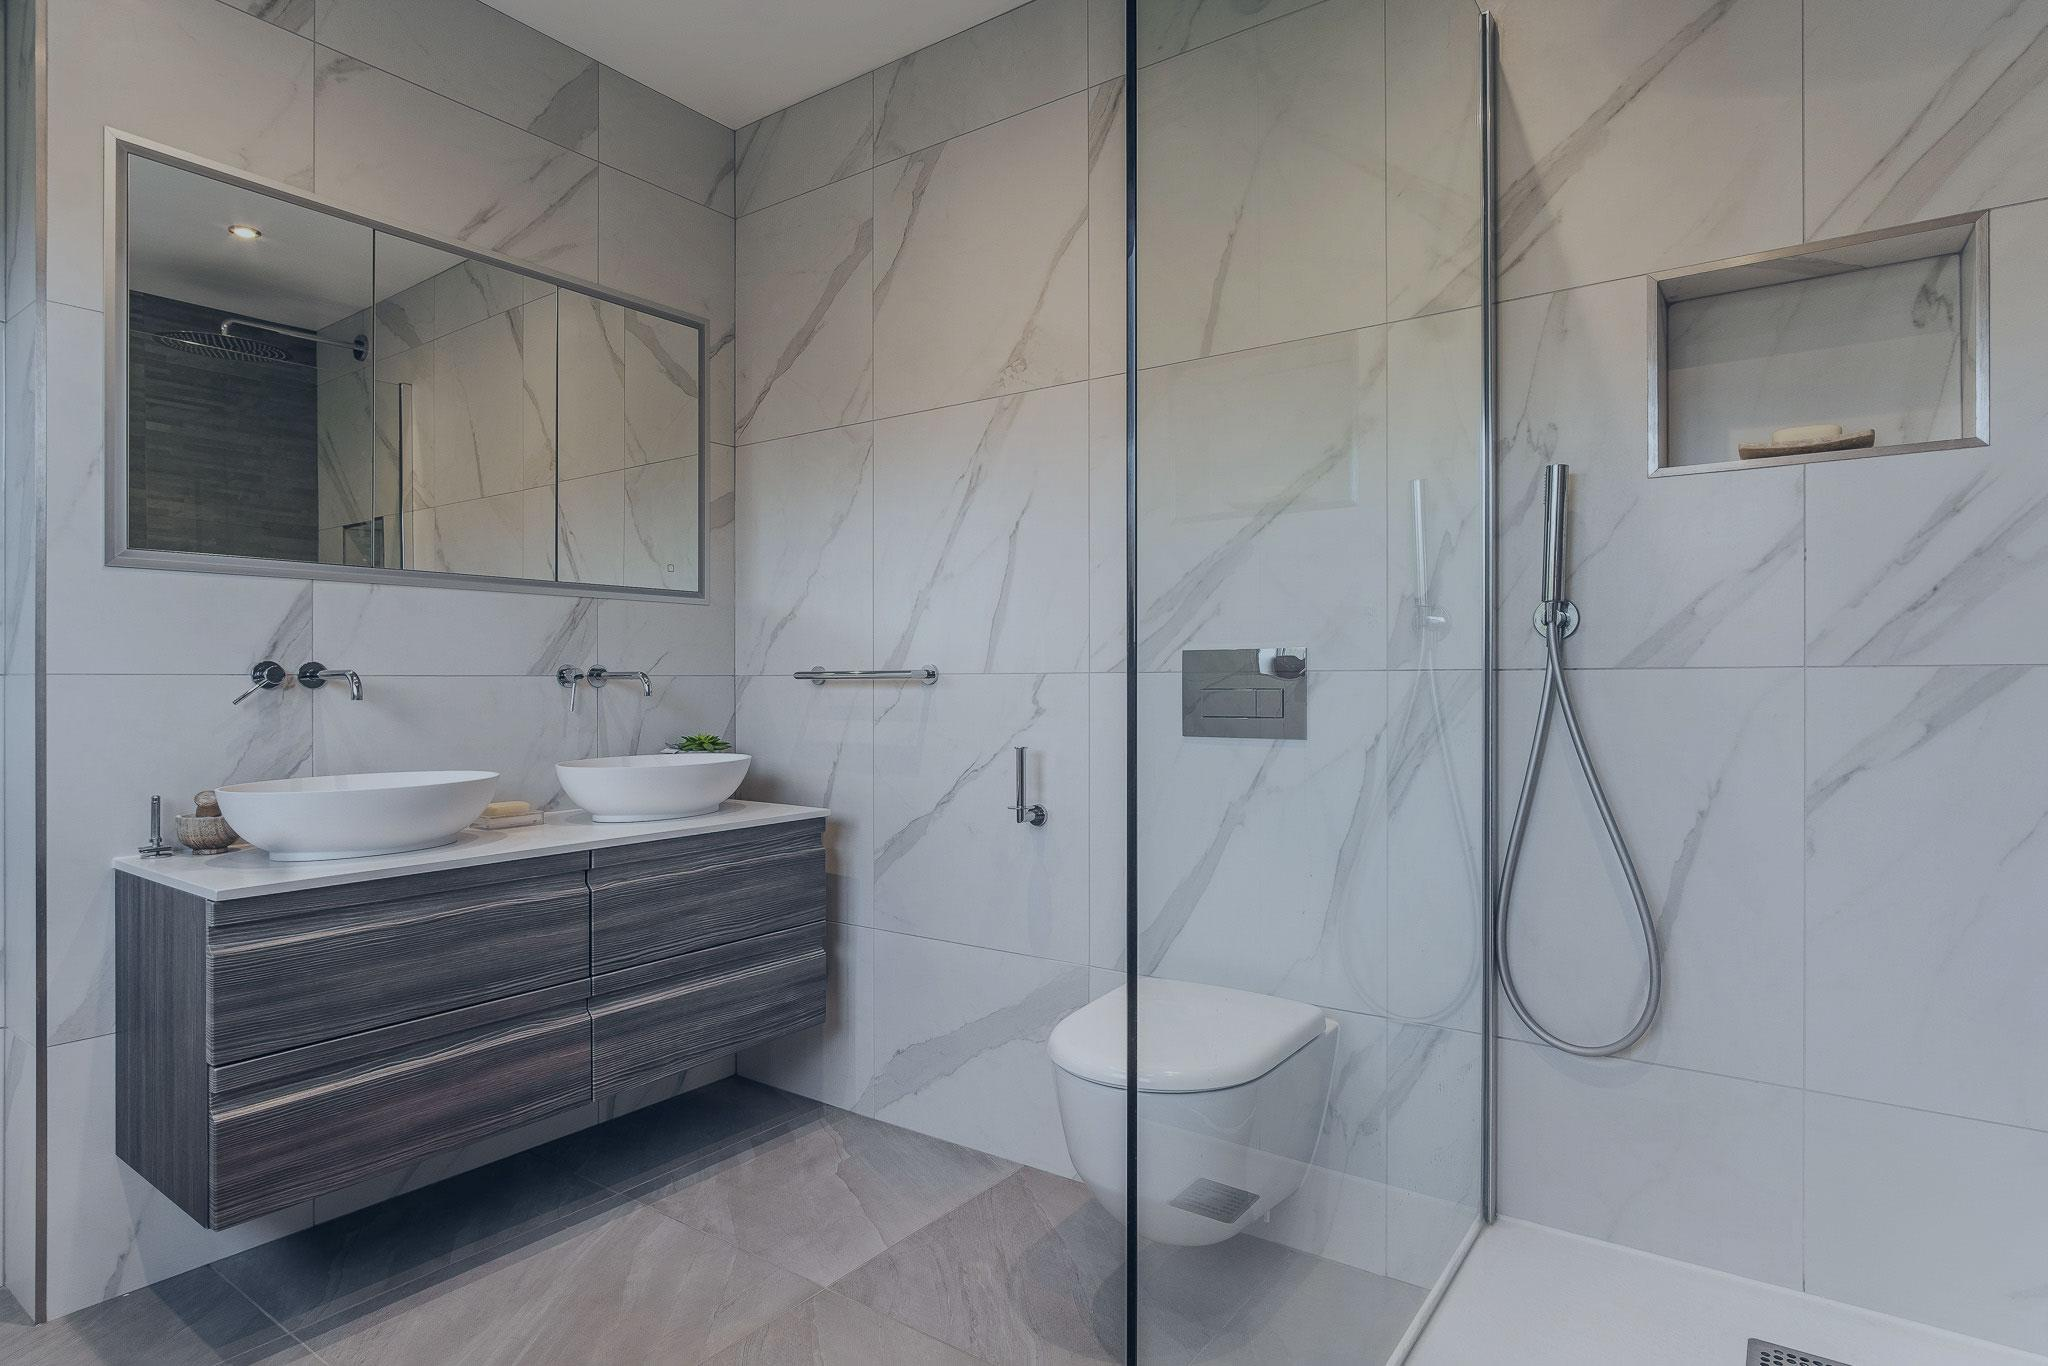 oak effect floating vanity unit with sit on basin bowls above recessed LED mirror. Walk in shower and toilet. Carrera marble tiles are in on the bathroom walls